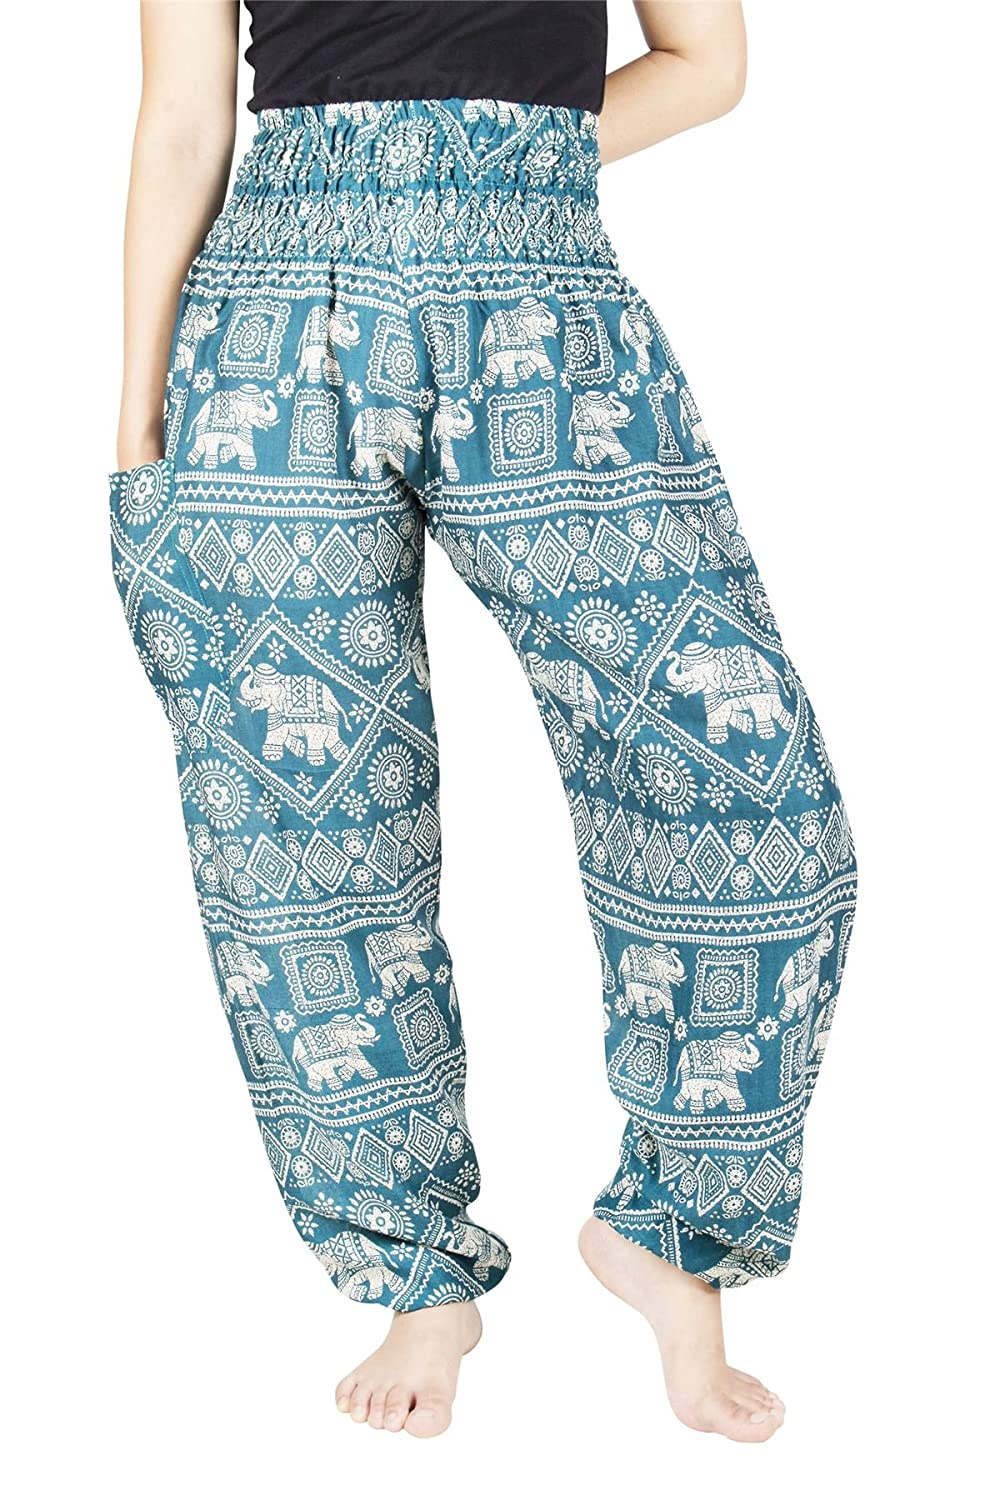 Lofbaz Women's Flower Elephant Printed Boho Pants